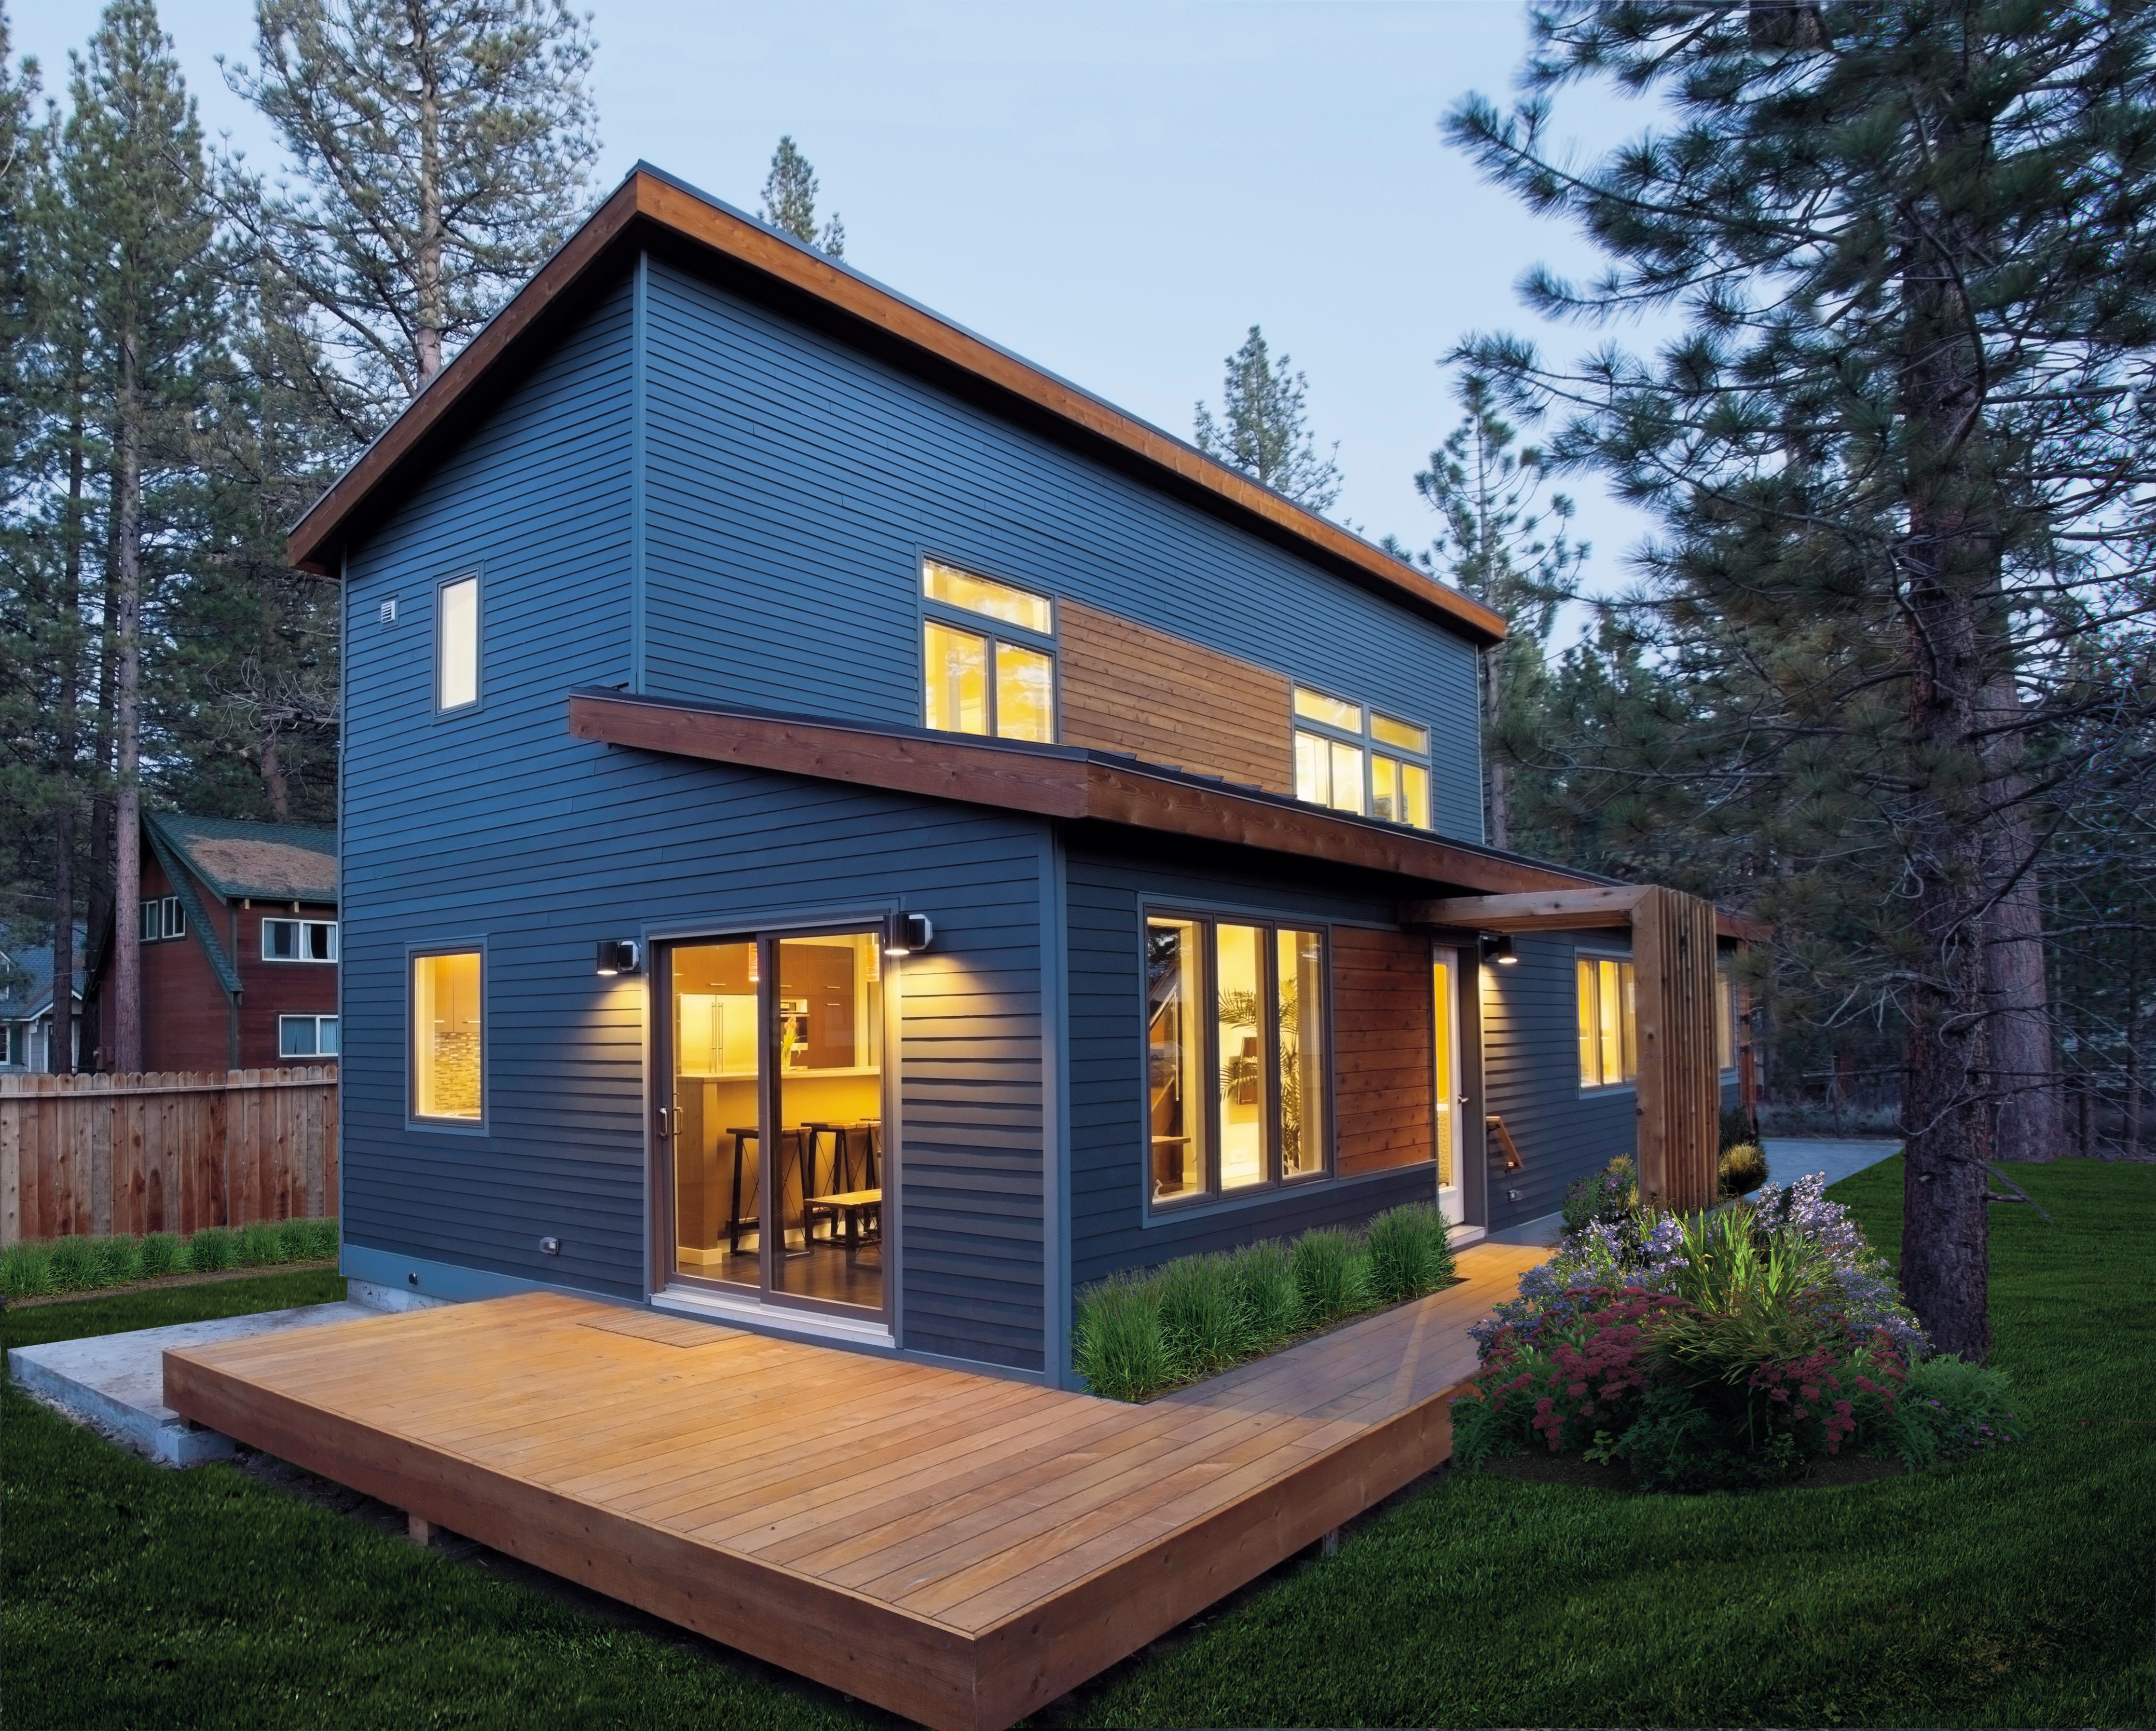 8 prefab homes that blend creativity and sustainability | builder